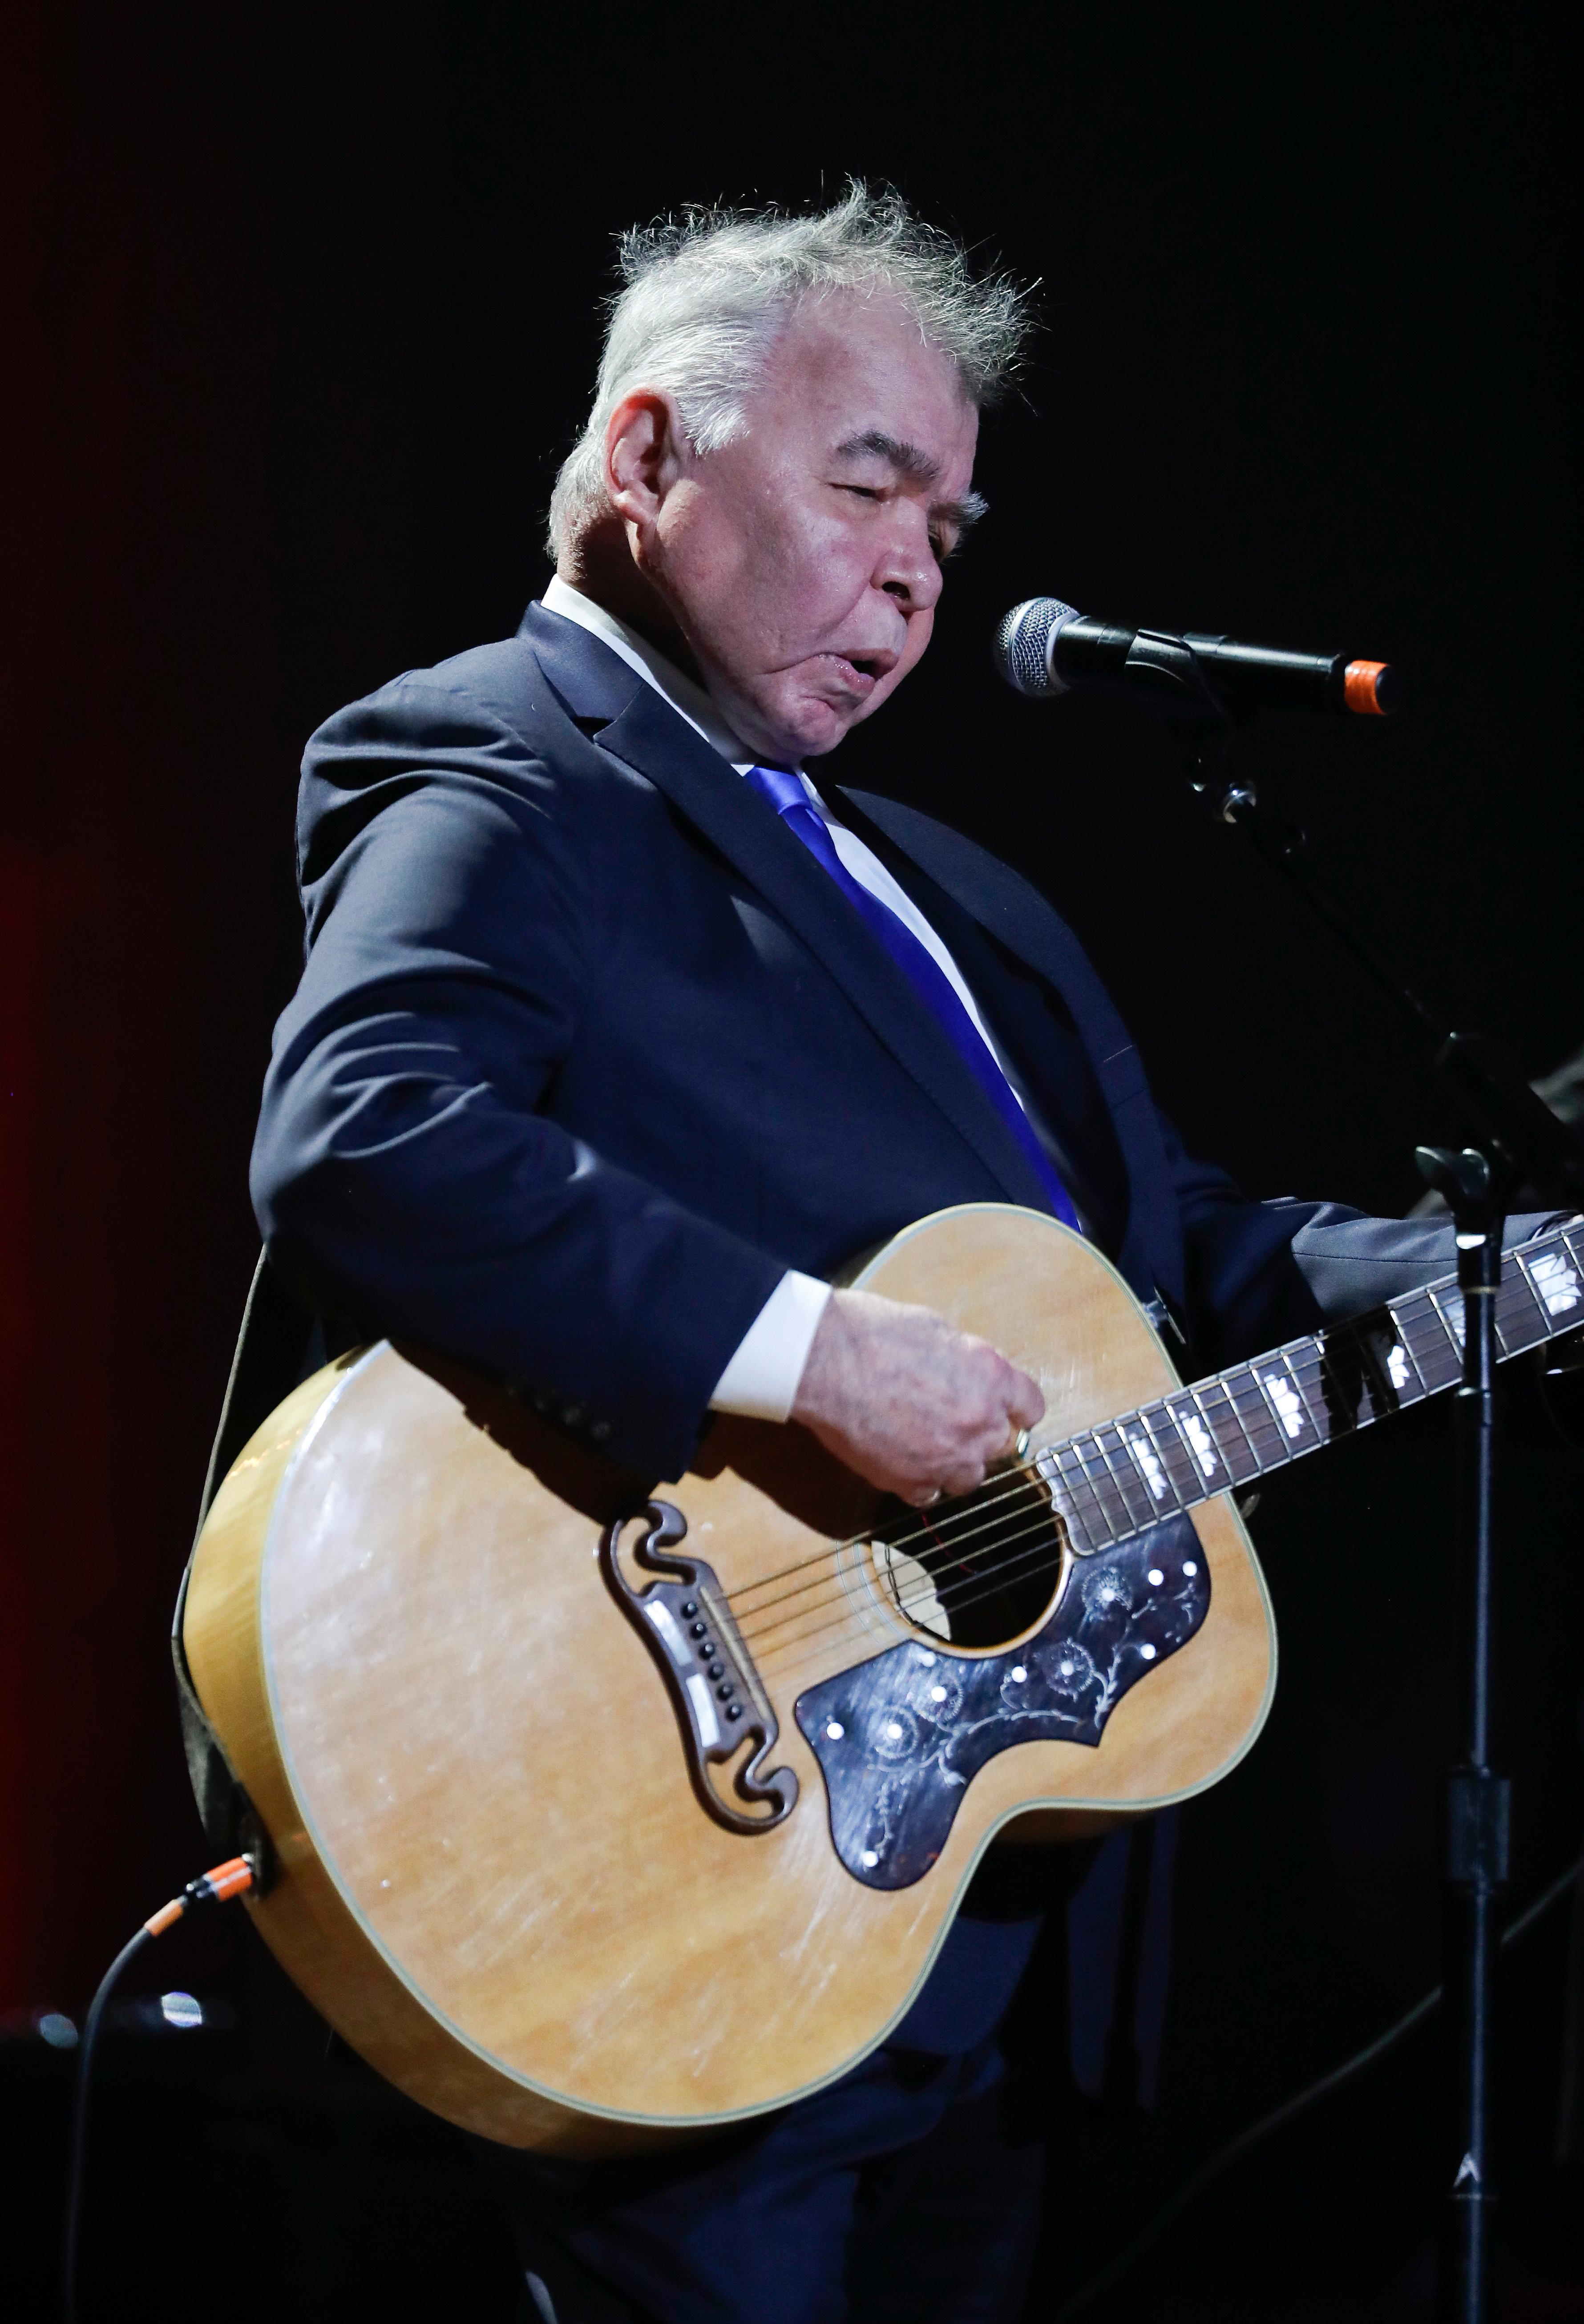 FILE - In this Wednesday, Sept. 13, 2017 file photo, John Prine performs during the Americana Honors and Awards show in Nashville, Tenn. Missy Elliott is making history as the first female rapper inducted into the Songwriters Hall of Fame, whose 2019 class also includes legendary British singer Cat Stevens and country-folk icon Prine and others announced Saturday, Jan. 12, 2019, by the organization. (AP Photo/Mark Zaleski, File)